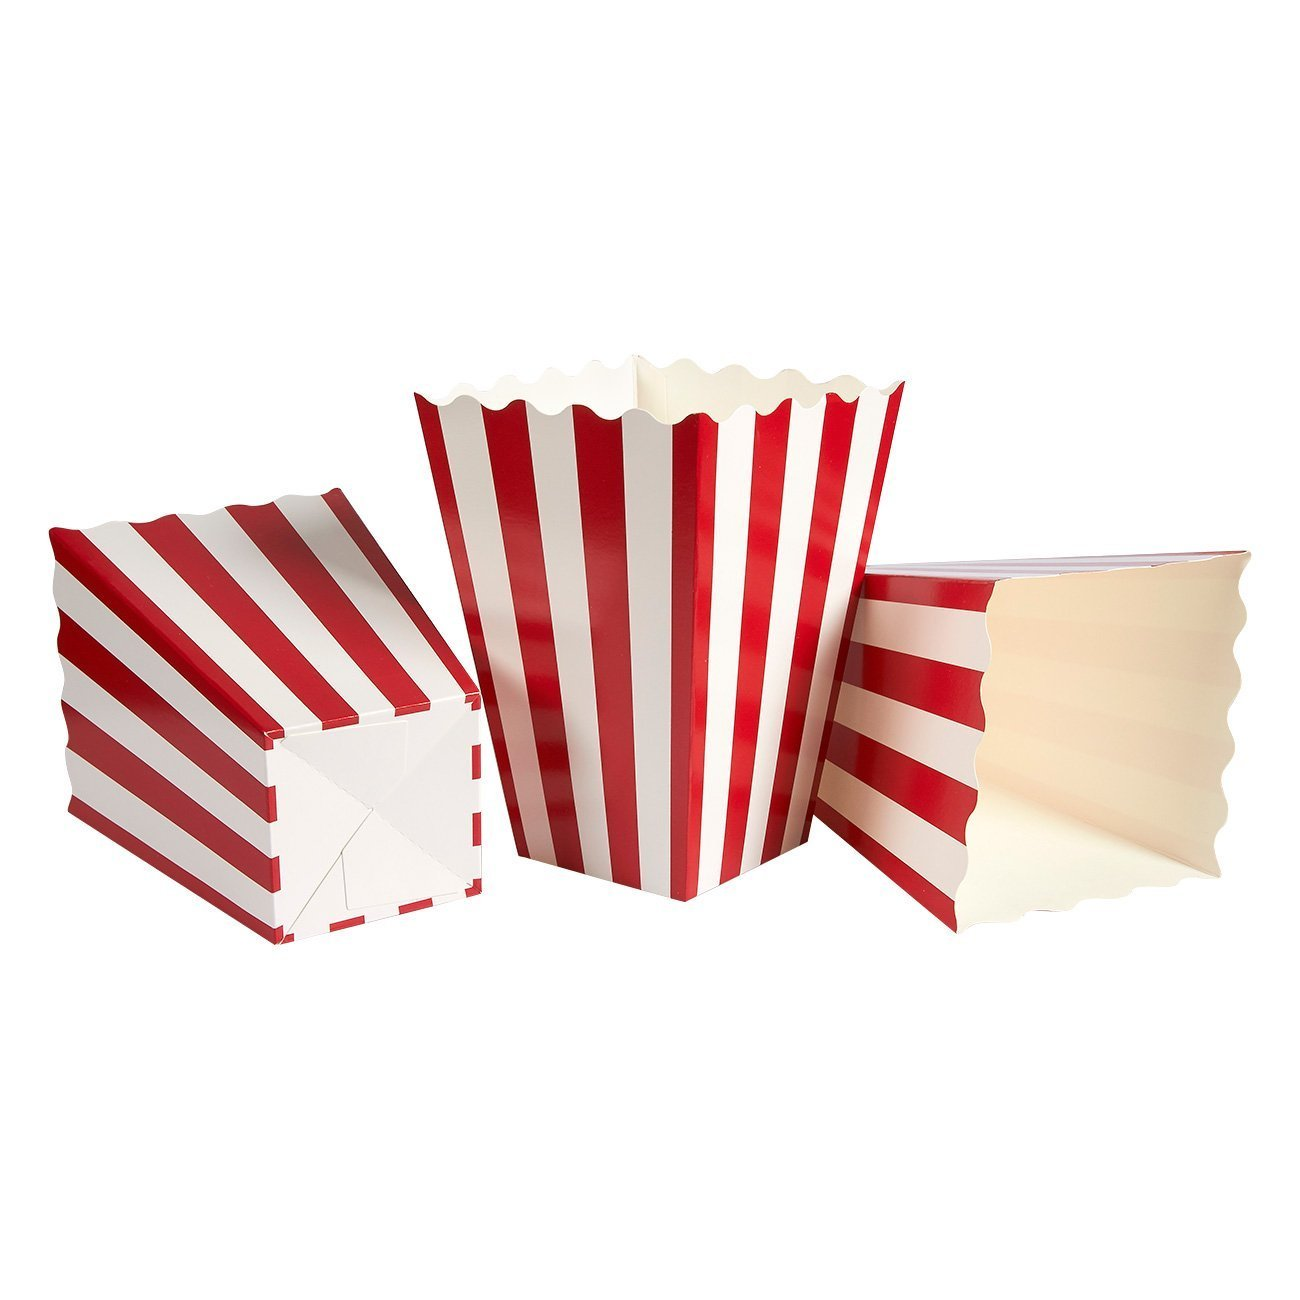 Set of 100 Popcorn Favor Boxes - Paper Popcorn Containers, Popcorn Party Supplies for Movie Nights, Movie-Themed Parties, Carnival Parties, Pirate Party, Red and White - 3.7 x 7.8 x 3.7 Inches by Blue Panda (Image #4)